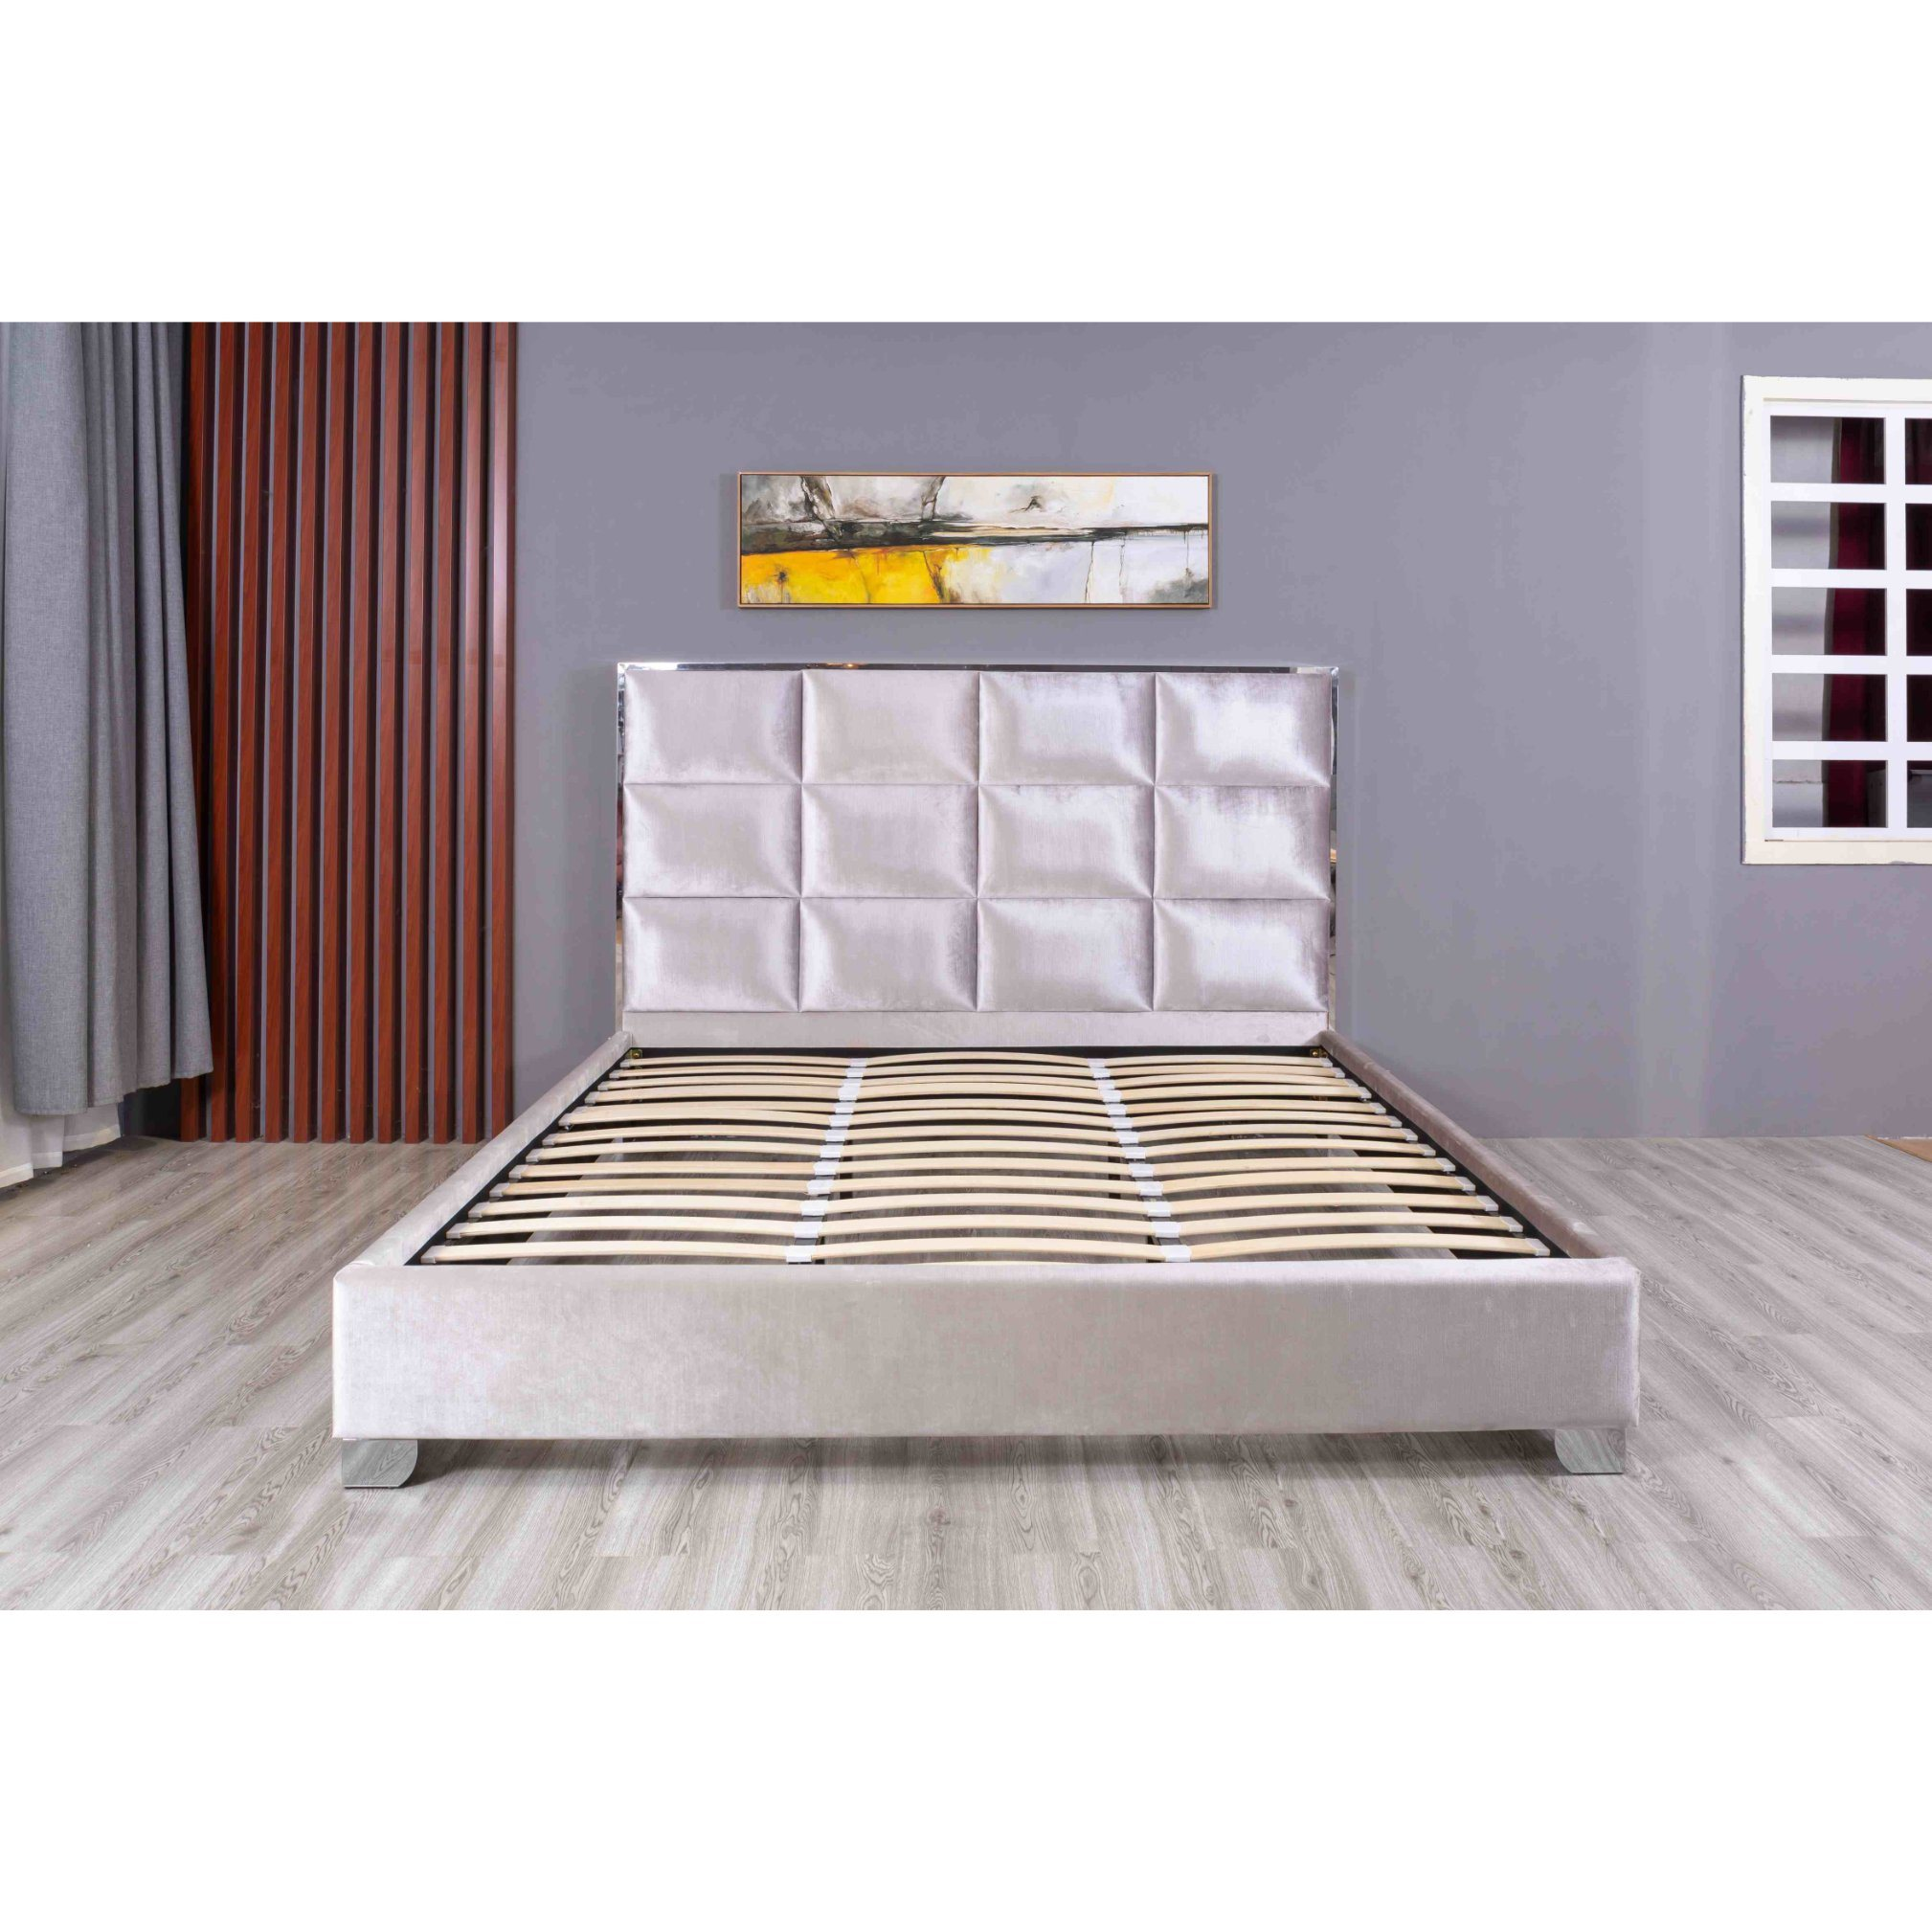 Modern Bed Frames King Bed Leather Bed Chinese Furniture China Bedroom Bed Living Room Furniture